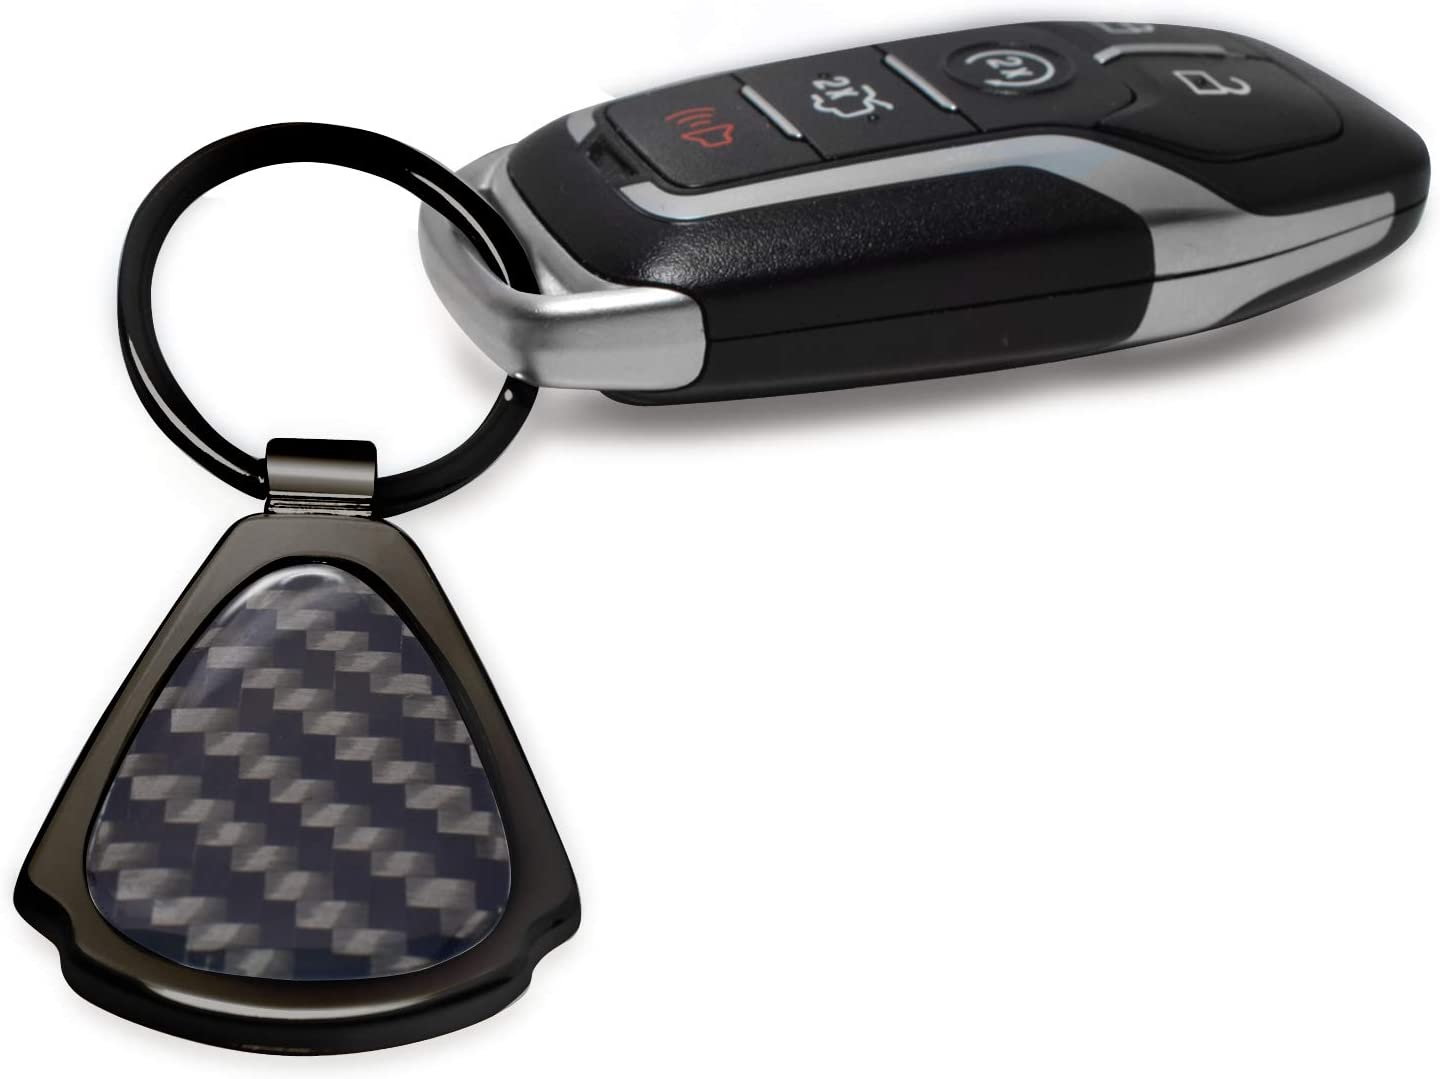 Chrysler Logo Real Black Carbon Fiber Gunmetal Black Metal Teardrop Key Chain